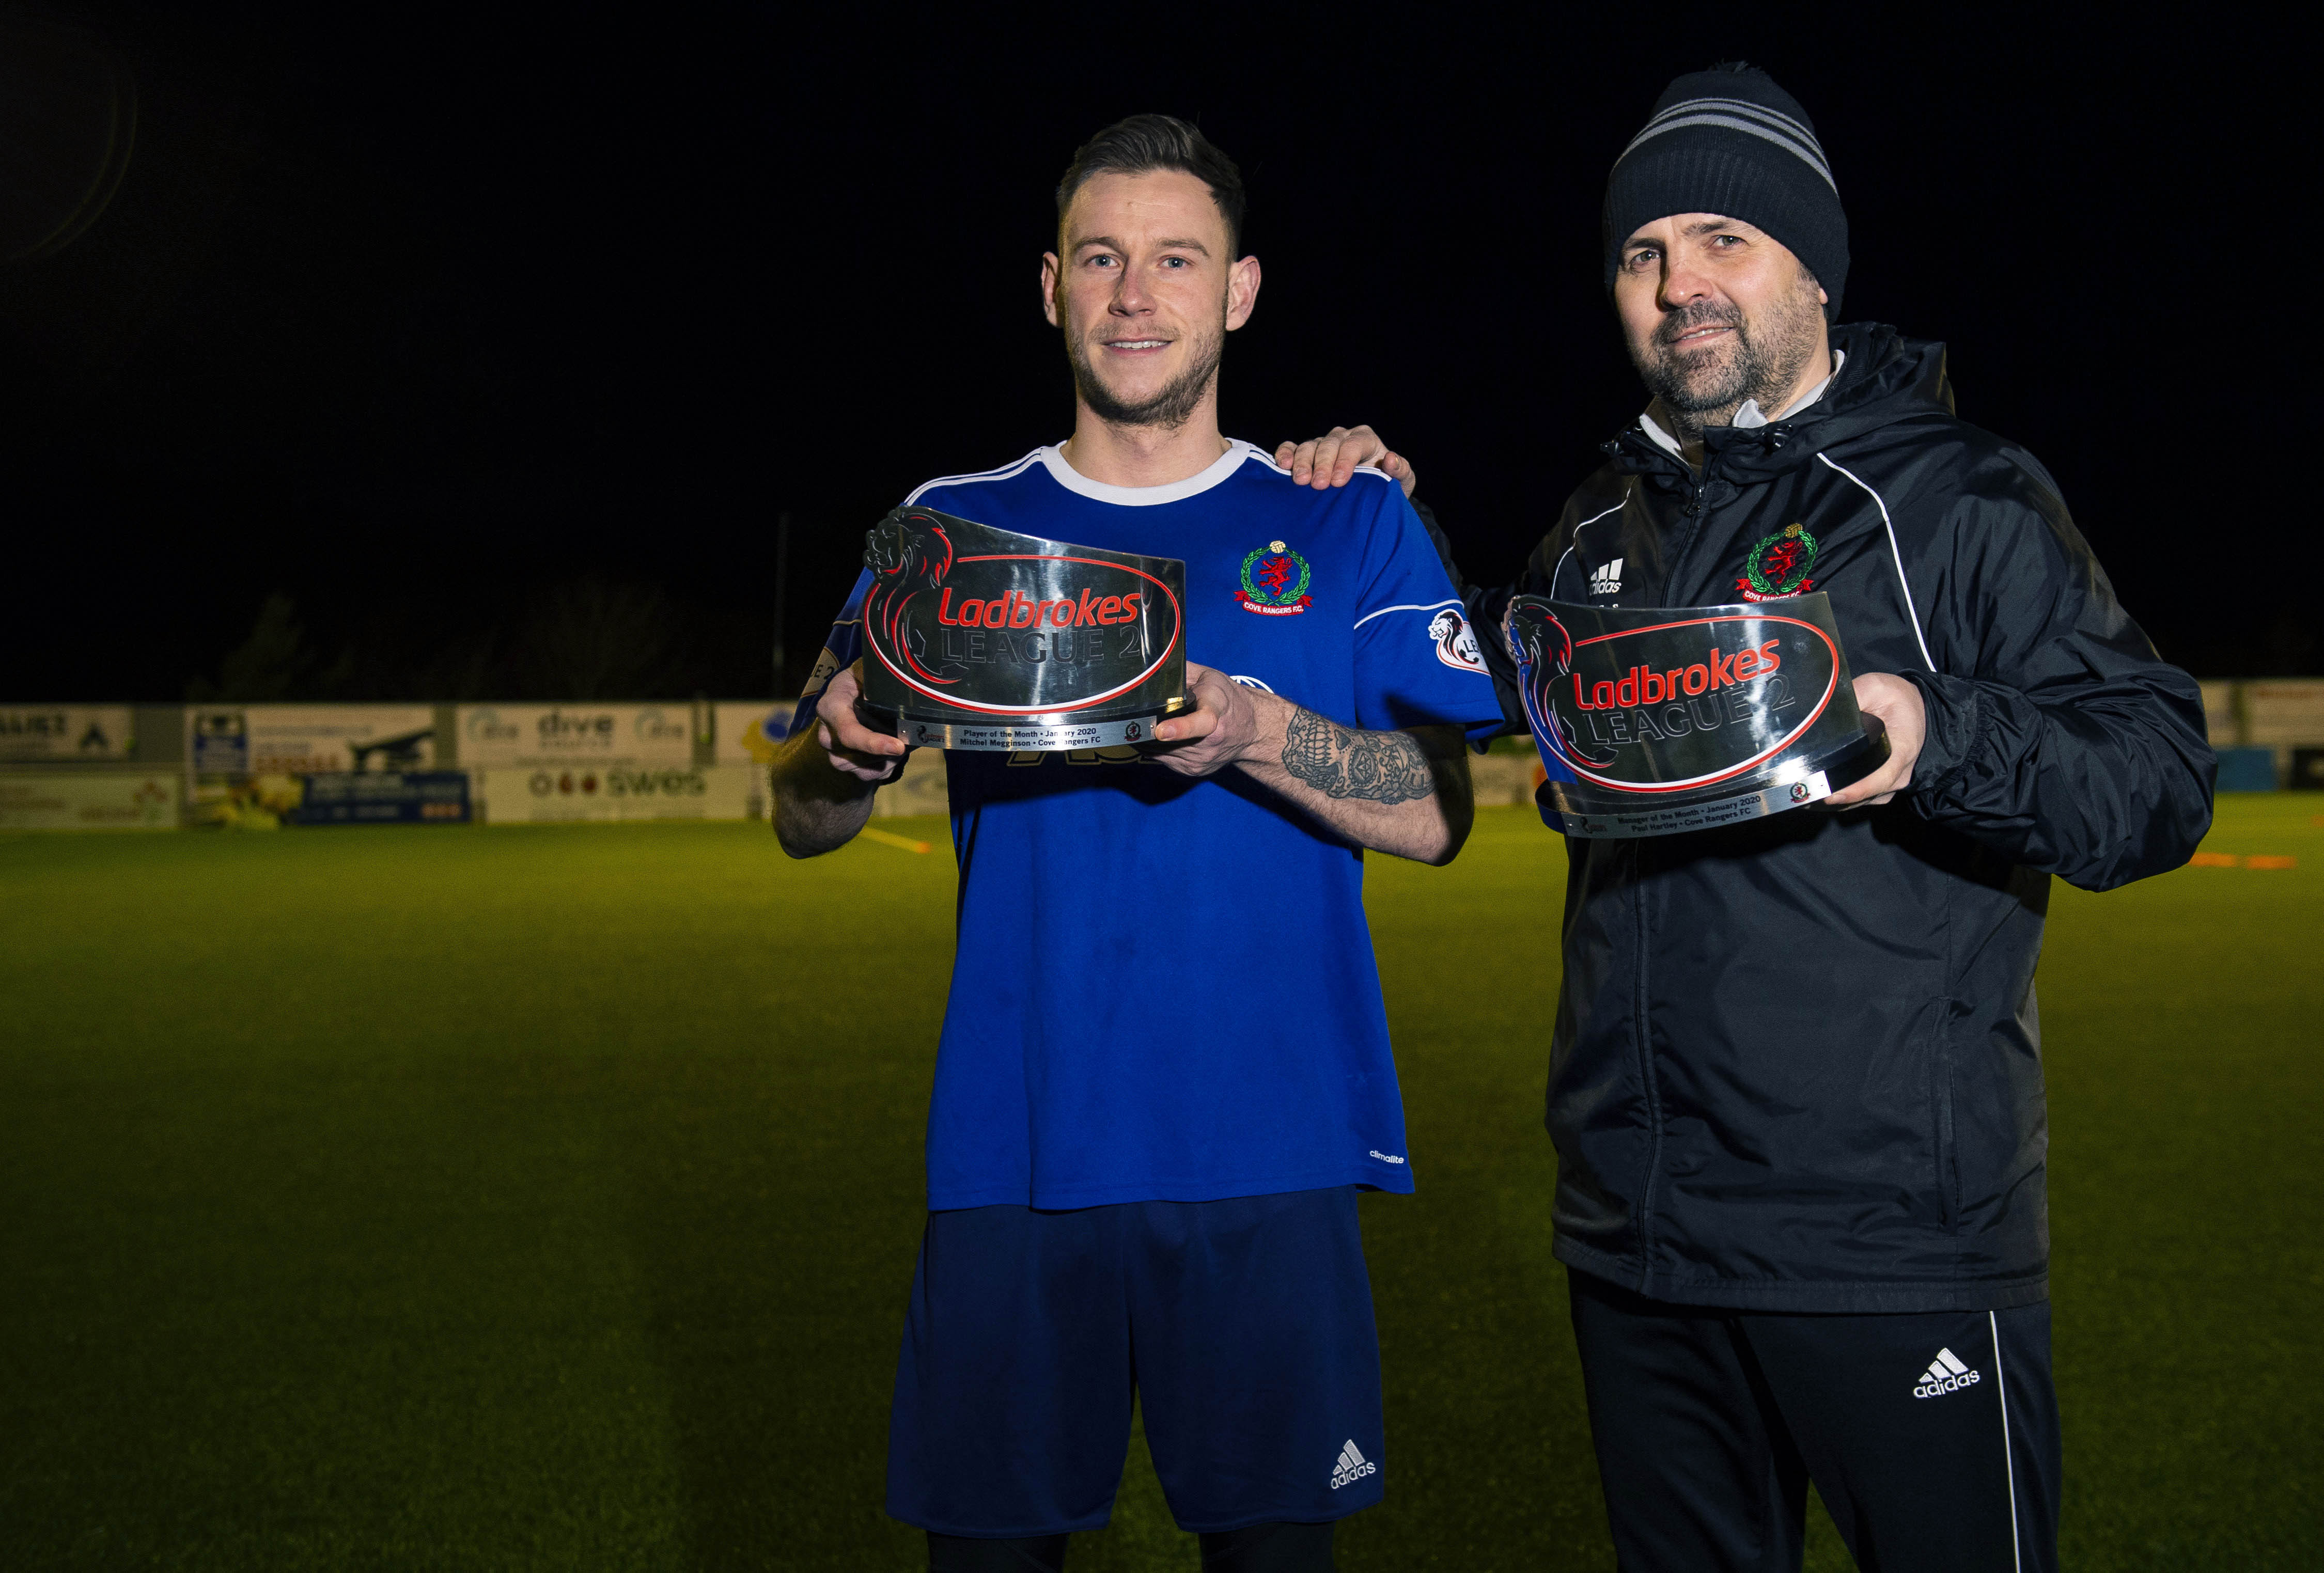 Cove Rangers manager Paul Hartley and striker Mitchel Megginson receiving the Ladbrokes League 2 Manager and Player of the Month awards for January.